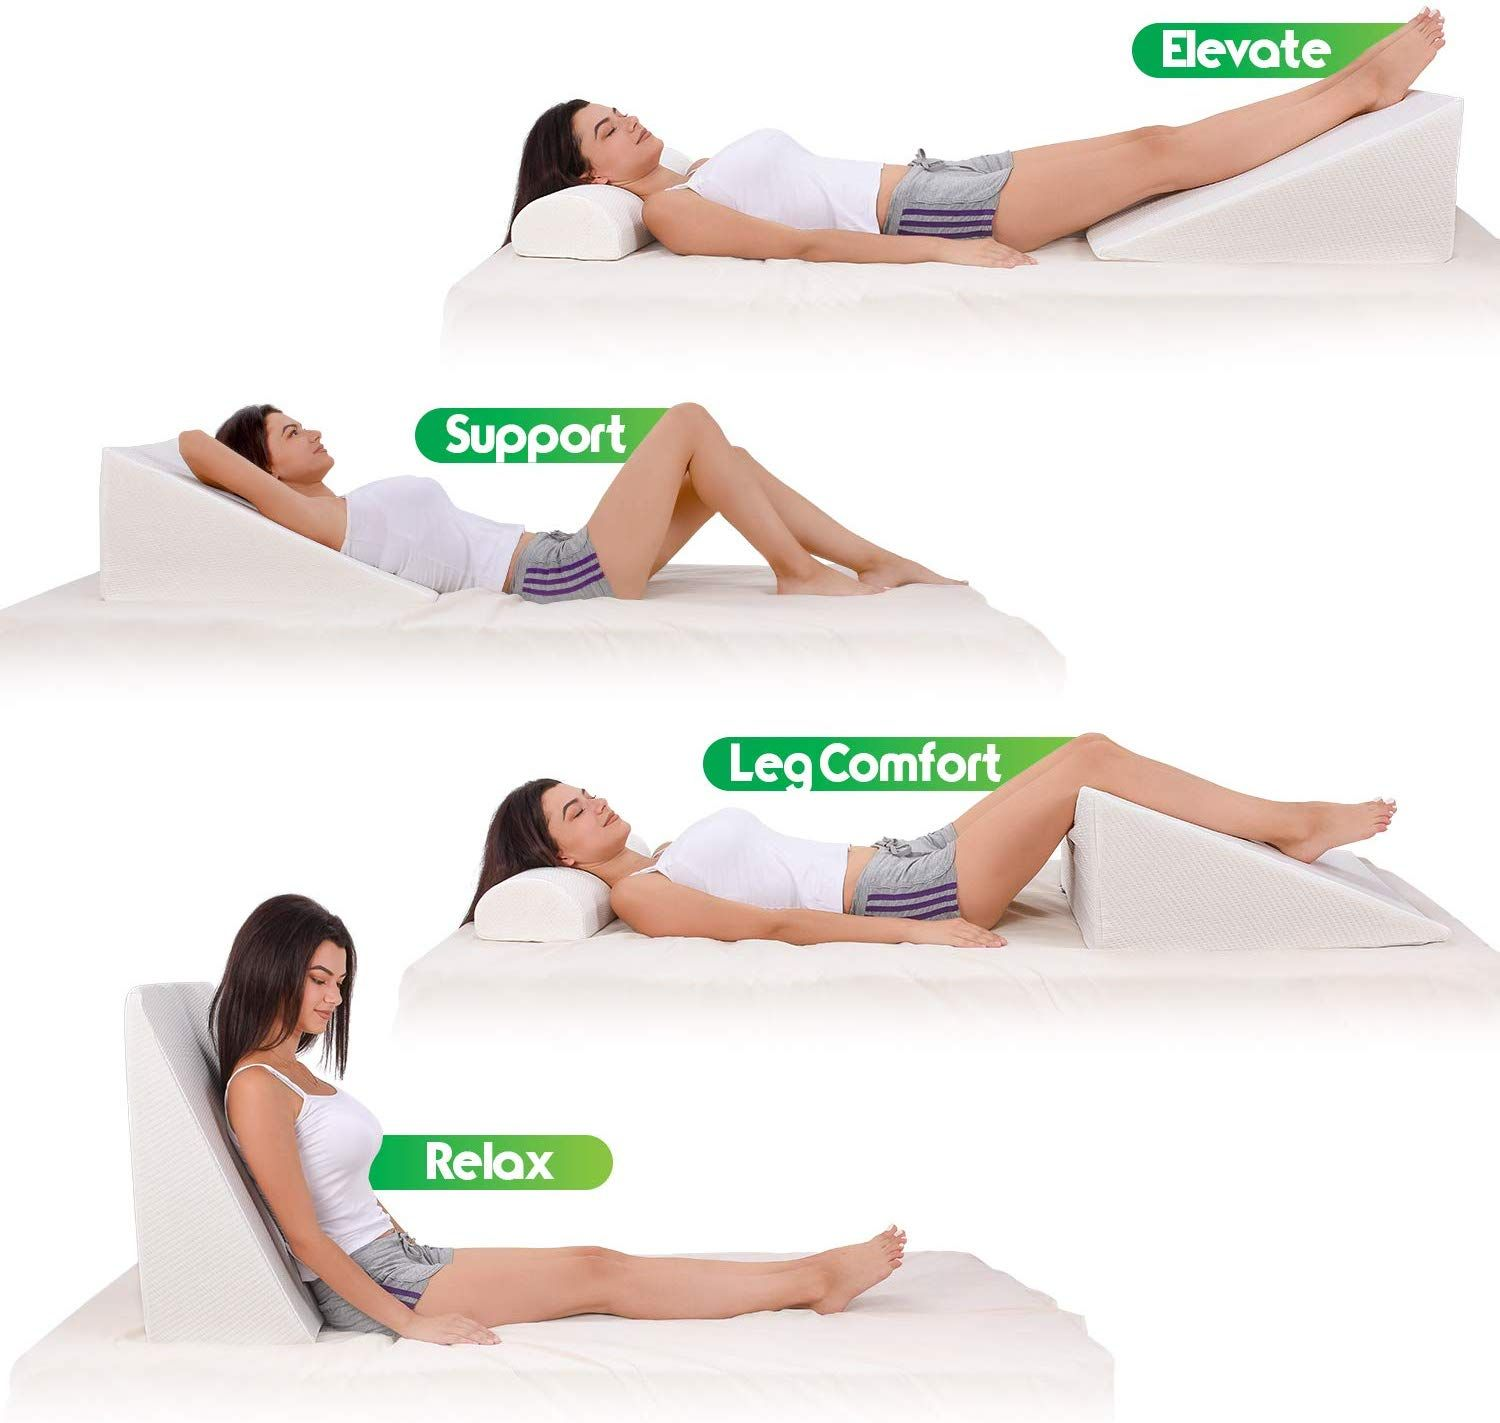 2x Acid Reflux Foam Bed Wedge Pillow Elevation Cushion Lumbar Support white